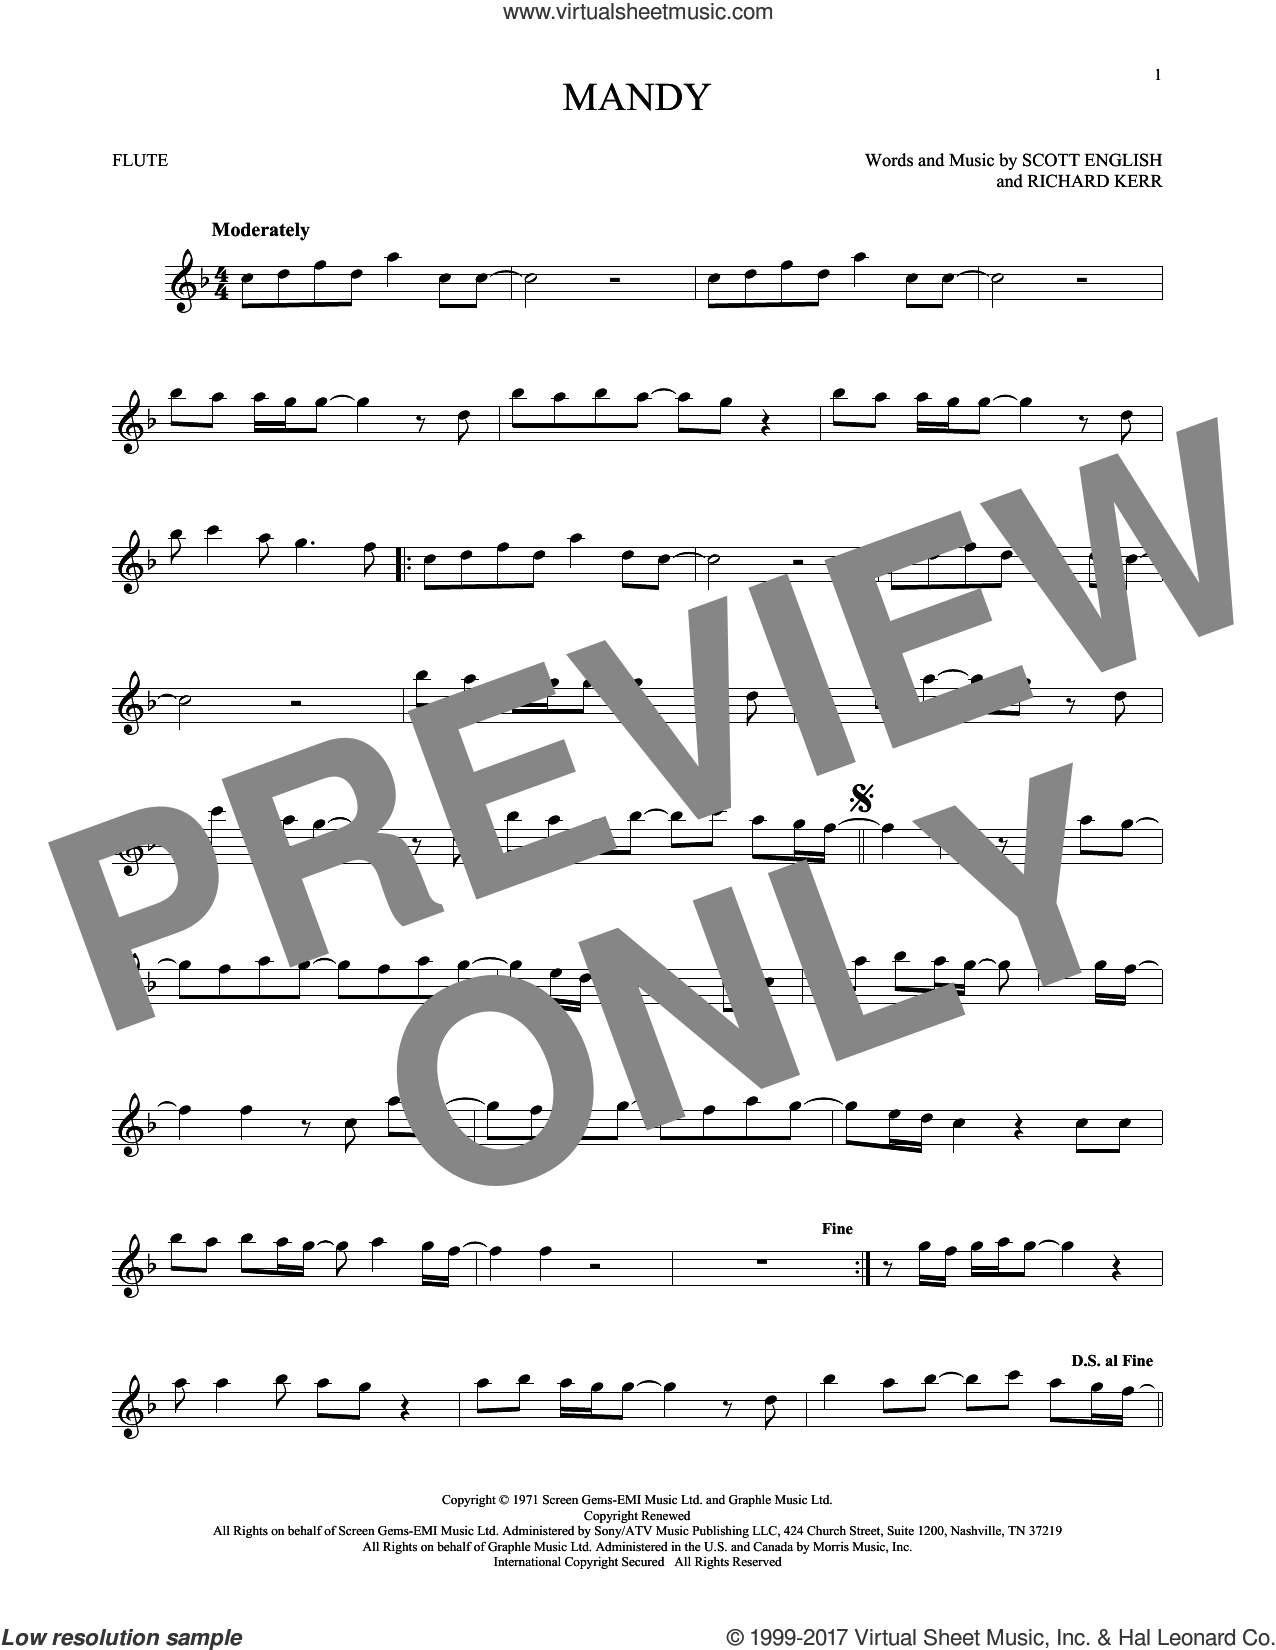 Mandy sheet music for flute solo by Barry Manilow, Richard Kerr and Scott English, intermediate